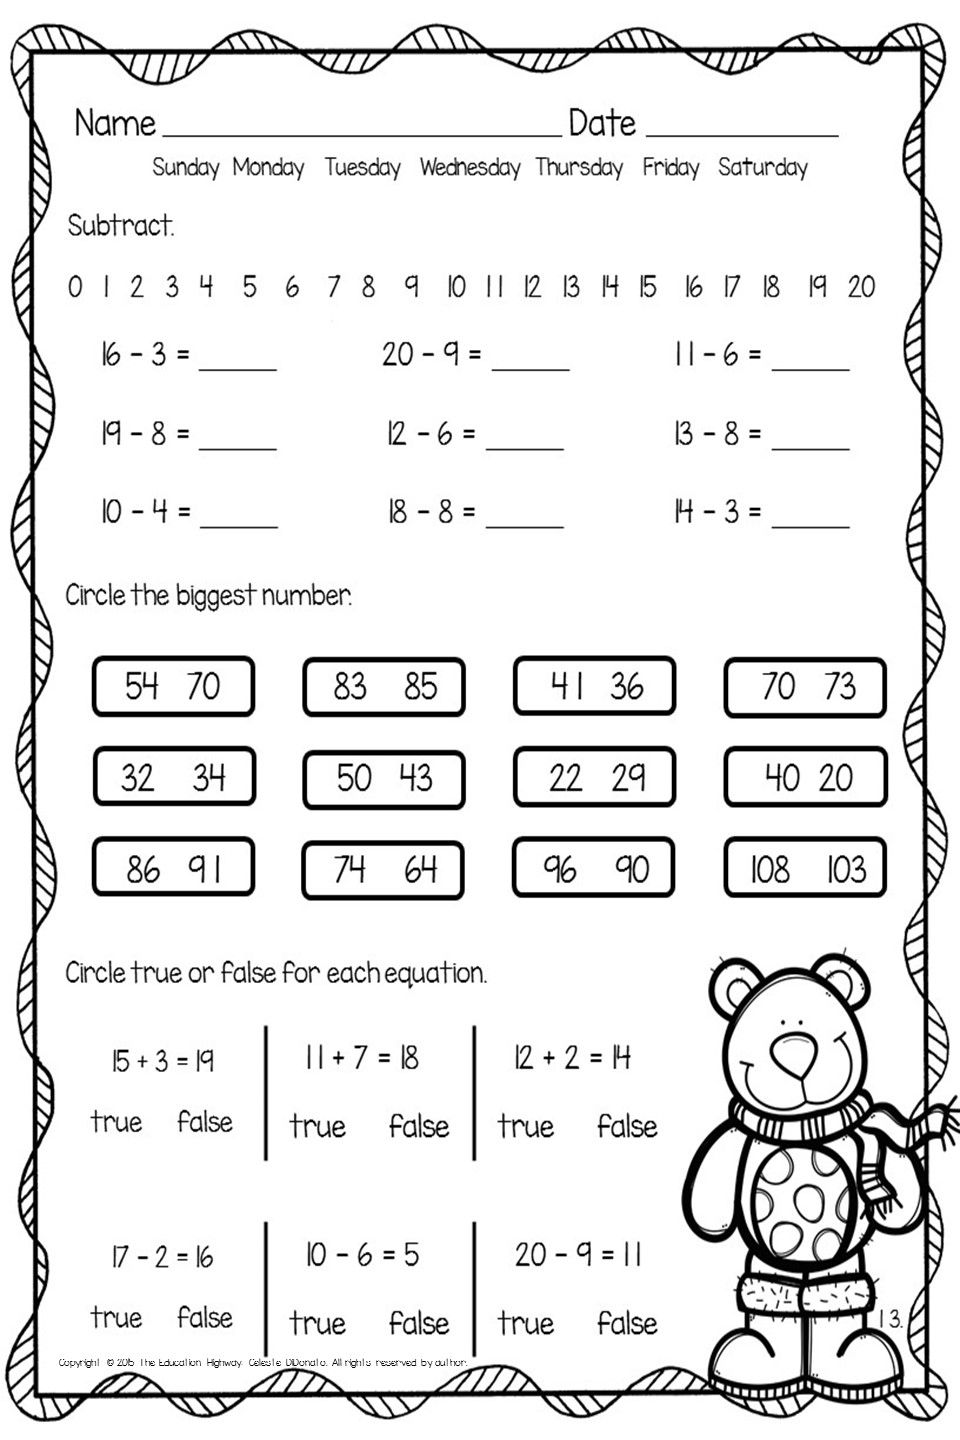 Free Rd Grade Math Worksheets Counting On And Back By Digits Ans further Shoppingatmallicon additionally Simple Addition Wheels Math Worksheets together with Greedydogicon additionally Adding Coins Money Second Grade. on 1st grade math addition worksheets